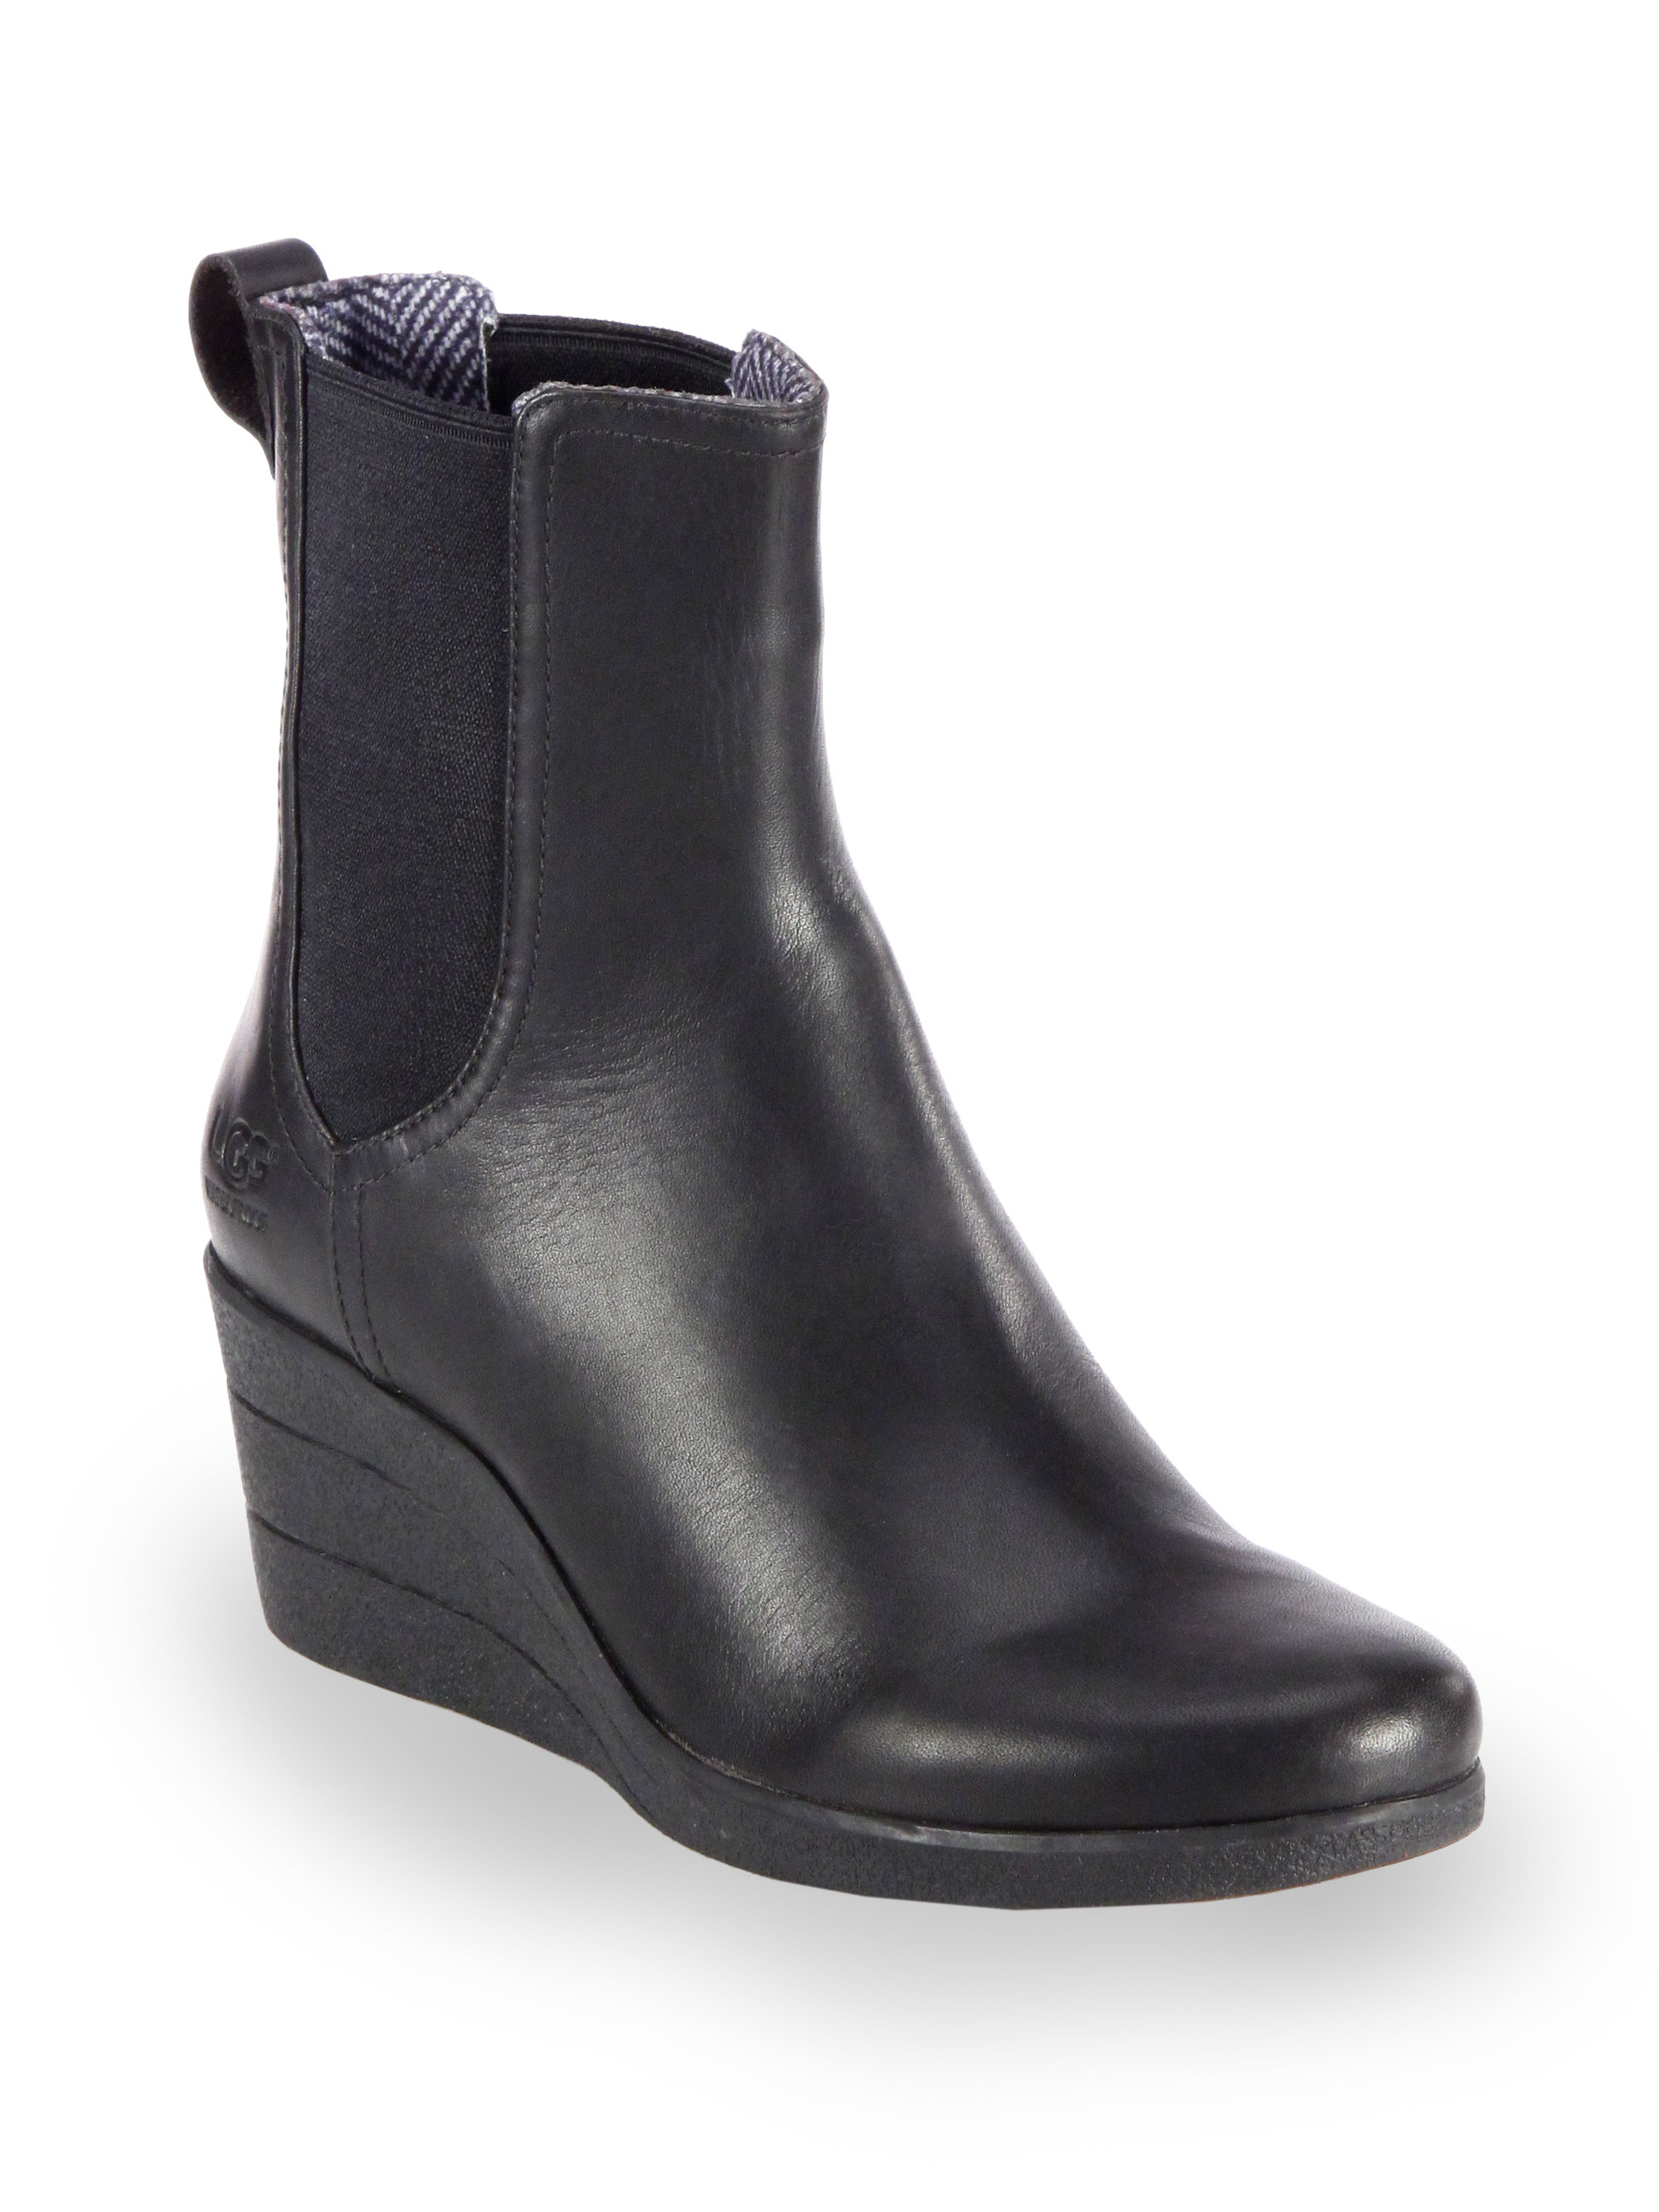 Lyst Ugg Dupre Leather Wedge Ankle Boots In Black